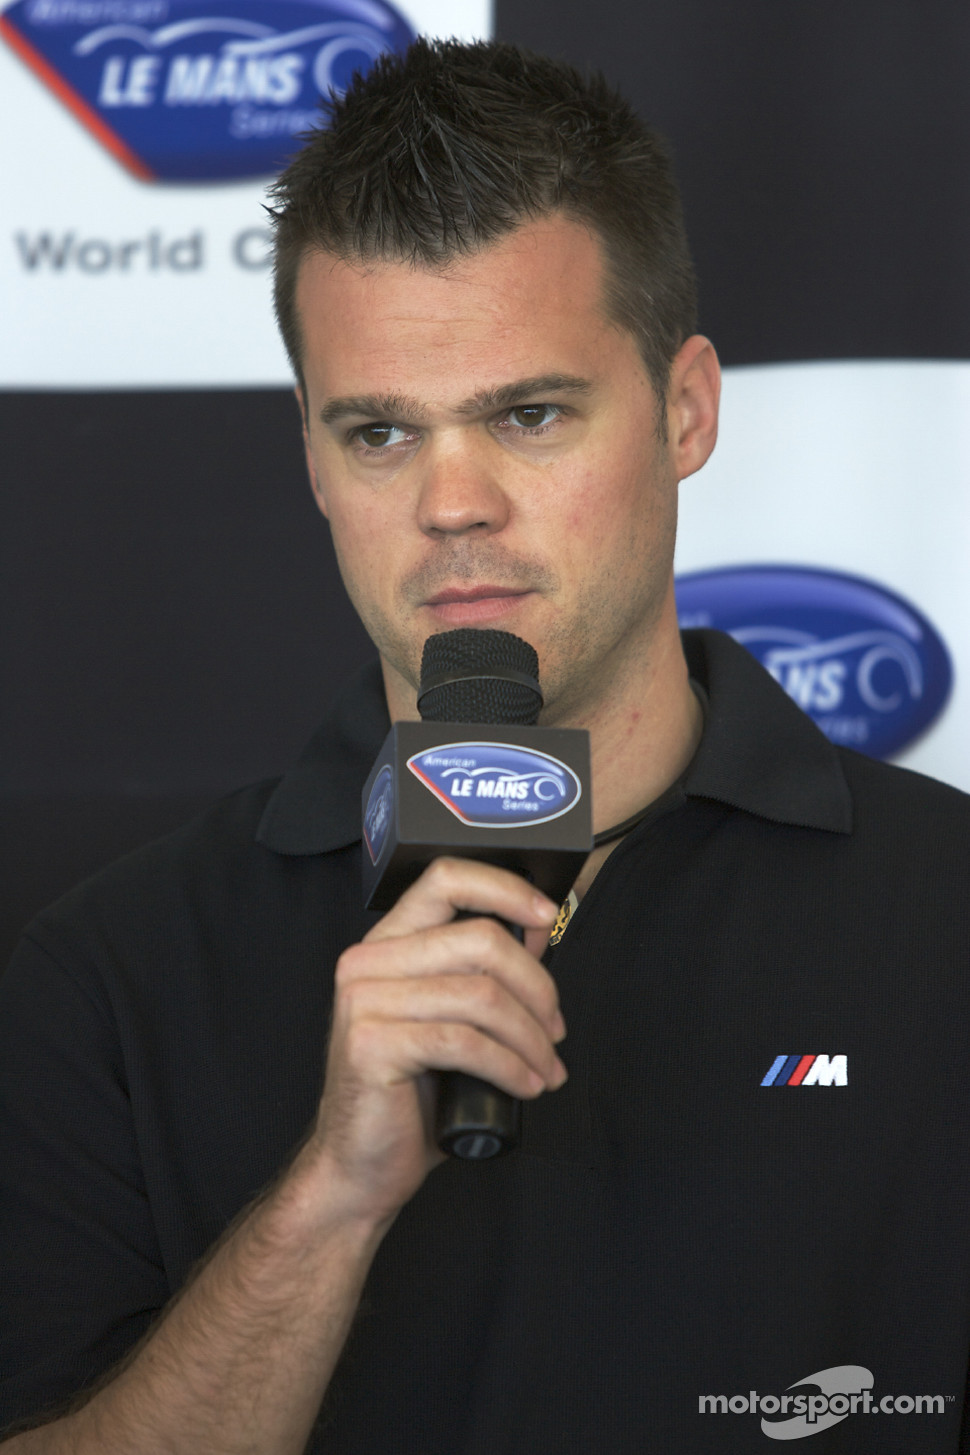 BMW Rahal Letternan press conference: Dirk Muller